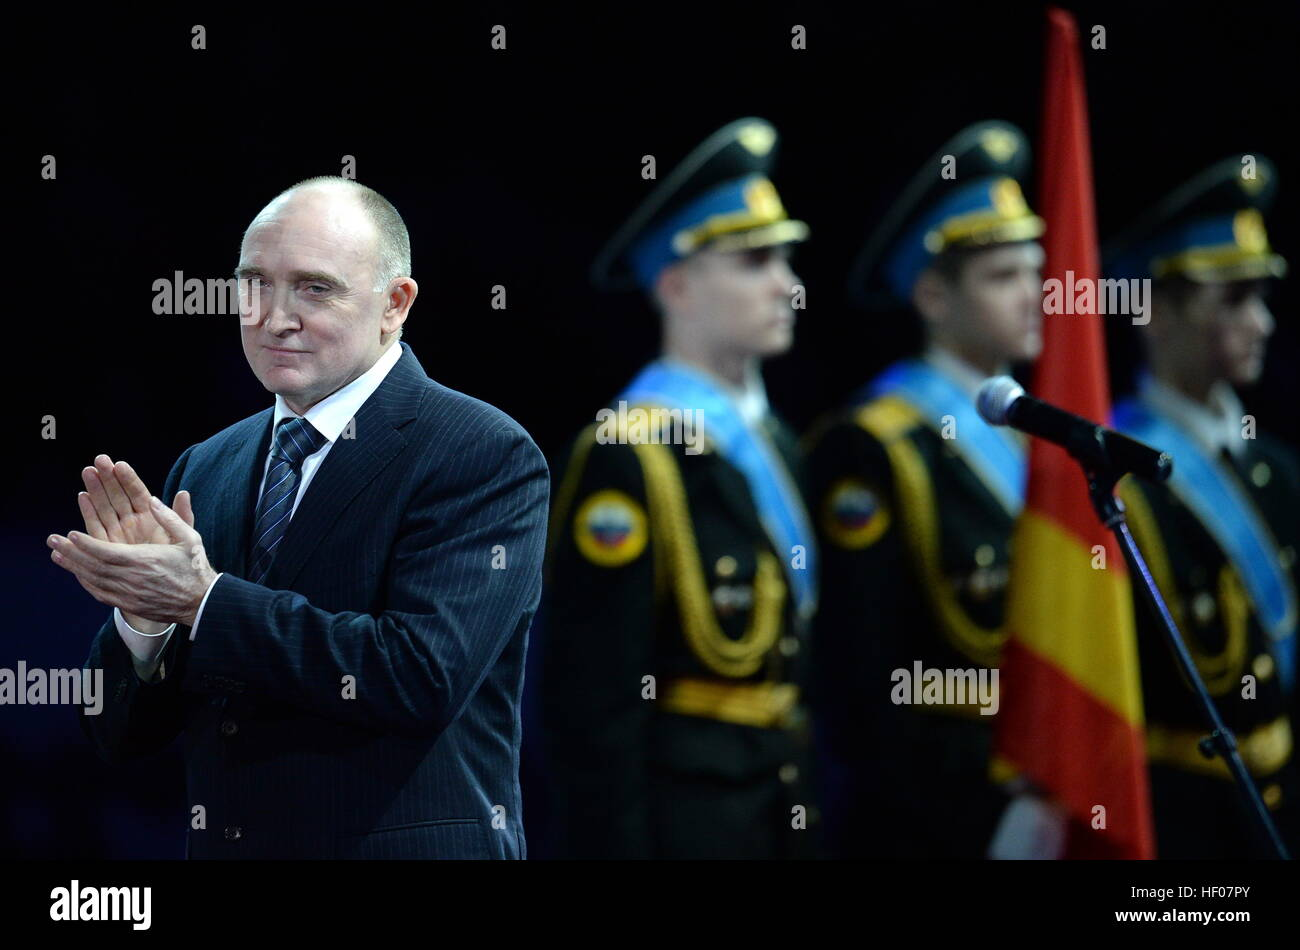 Chelyabinsk, Russia. 25th Dec, 2016. Chelyabinsk Region Governor Boris Dubrovsky claps his hands an award ceremony - Stock Image